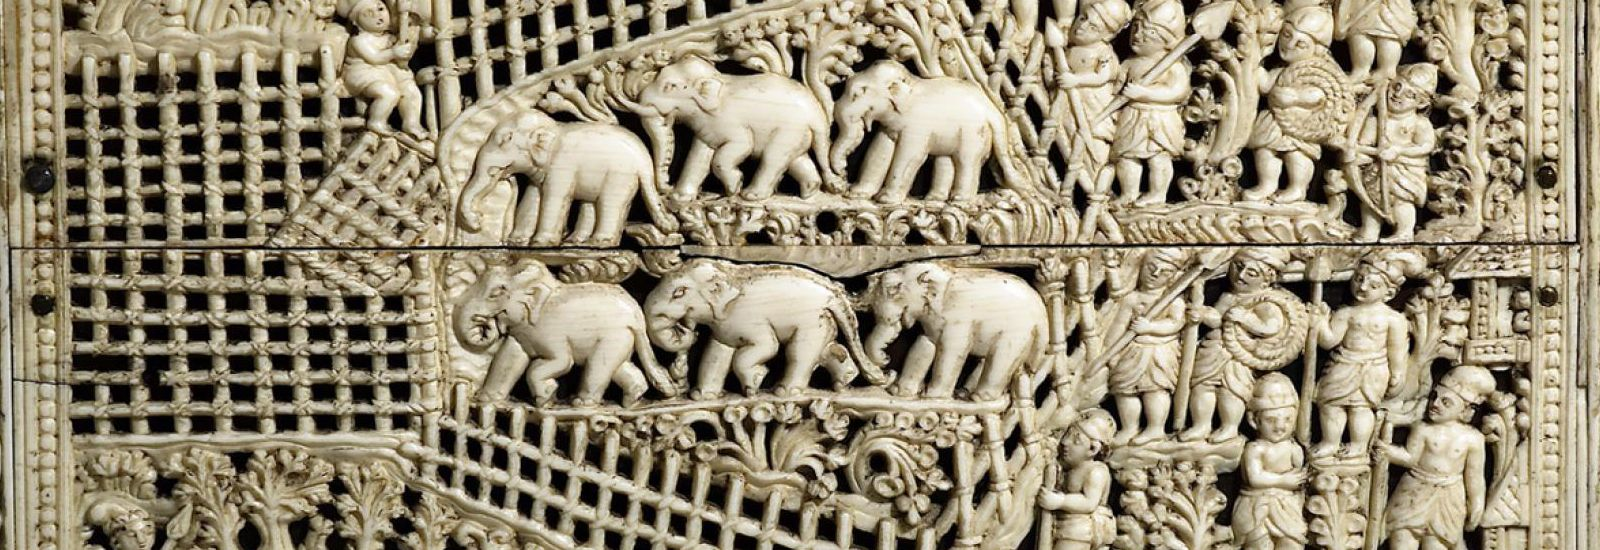 Ivory carving of elephants in the Ashmolean Museum